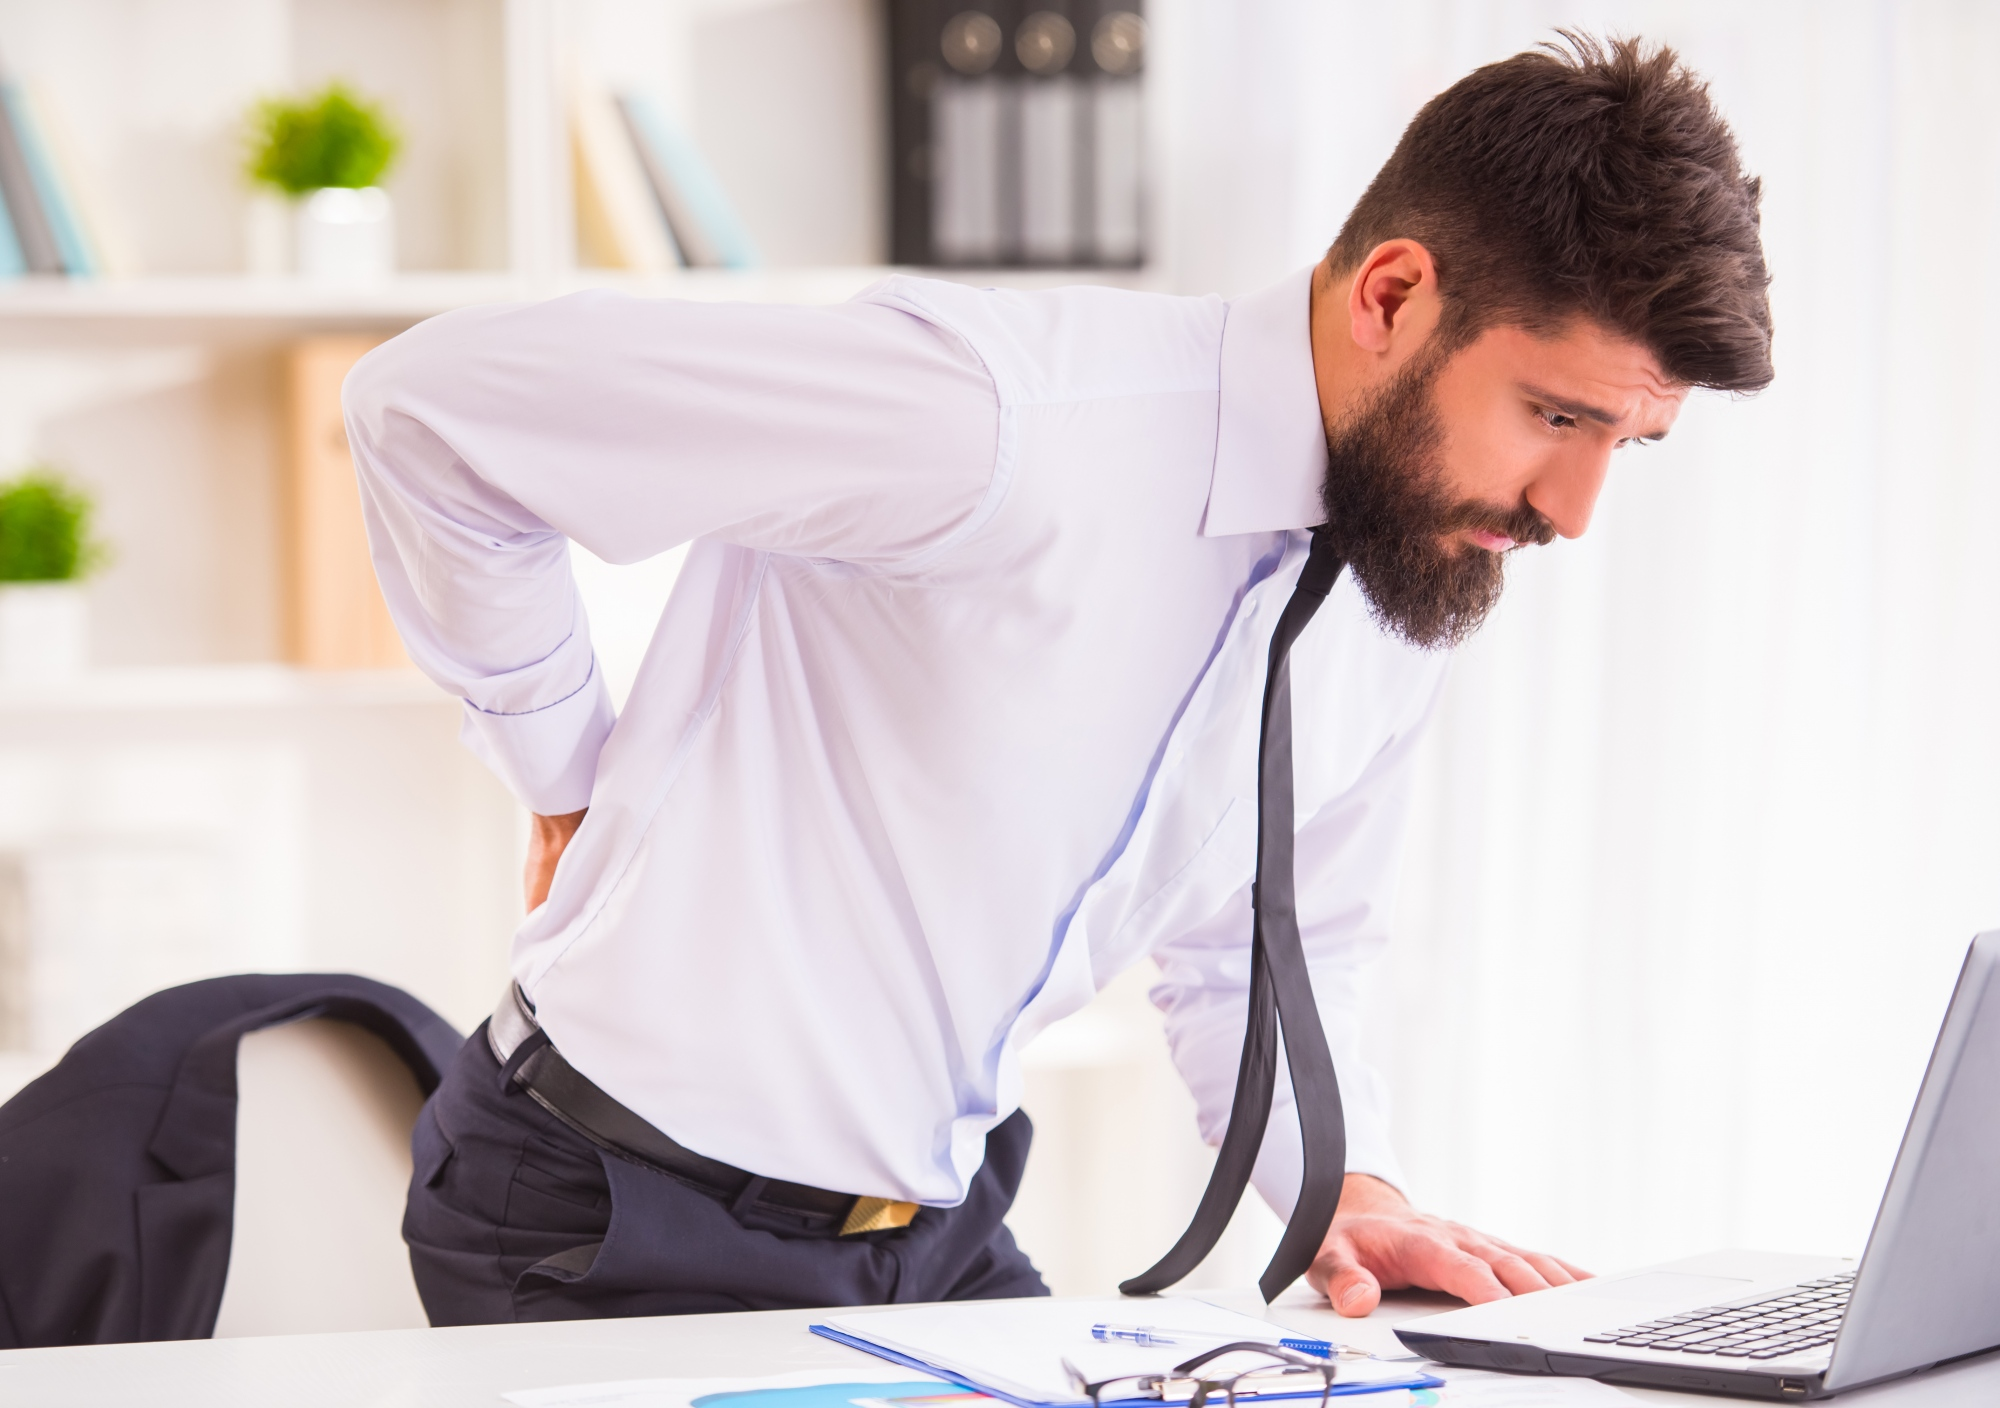 Why is lower back pain considered one of the hardest conditions to address?